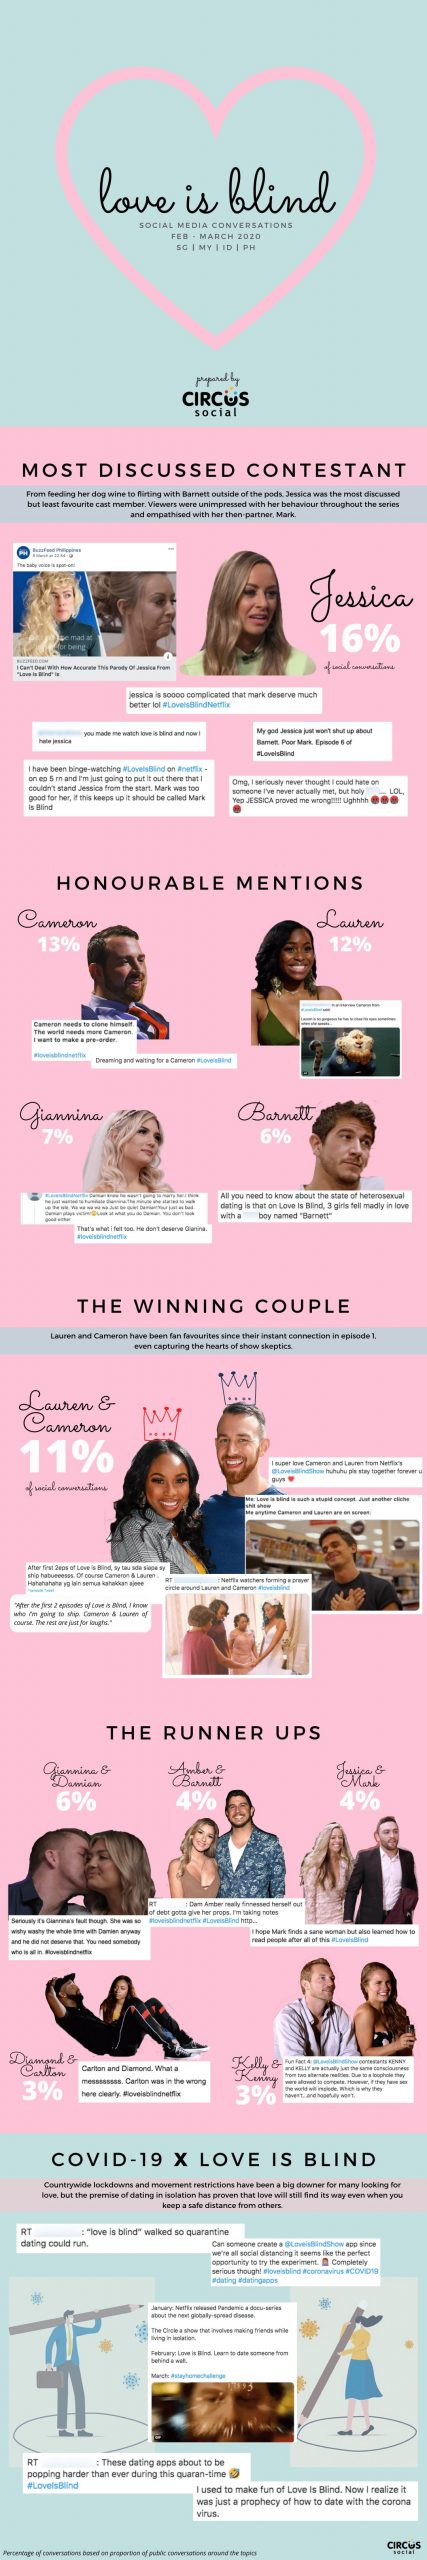 Circus Social - Love Is Blind Infographic